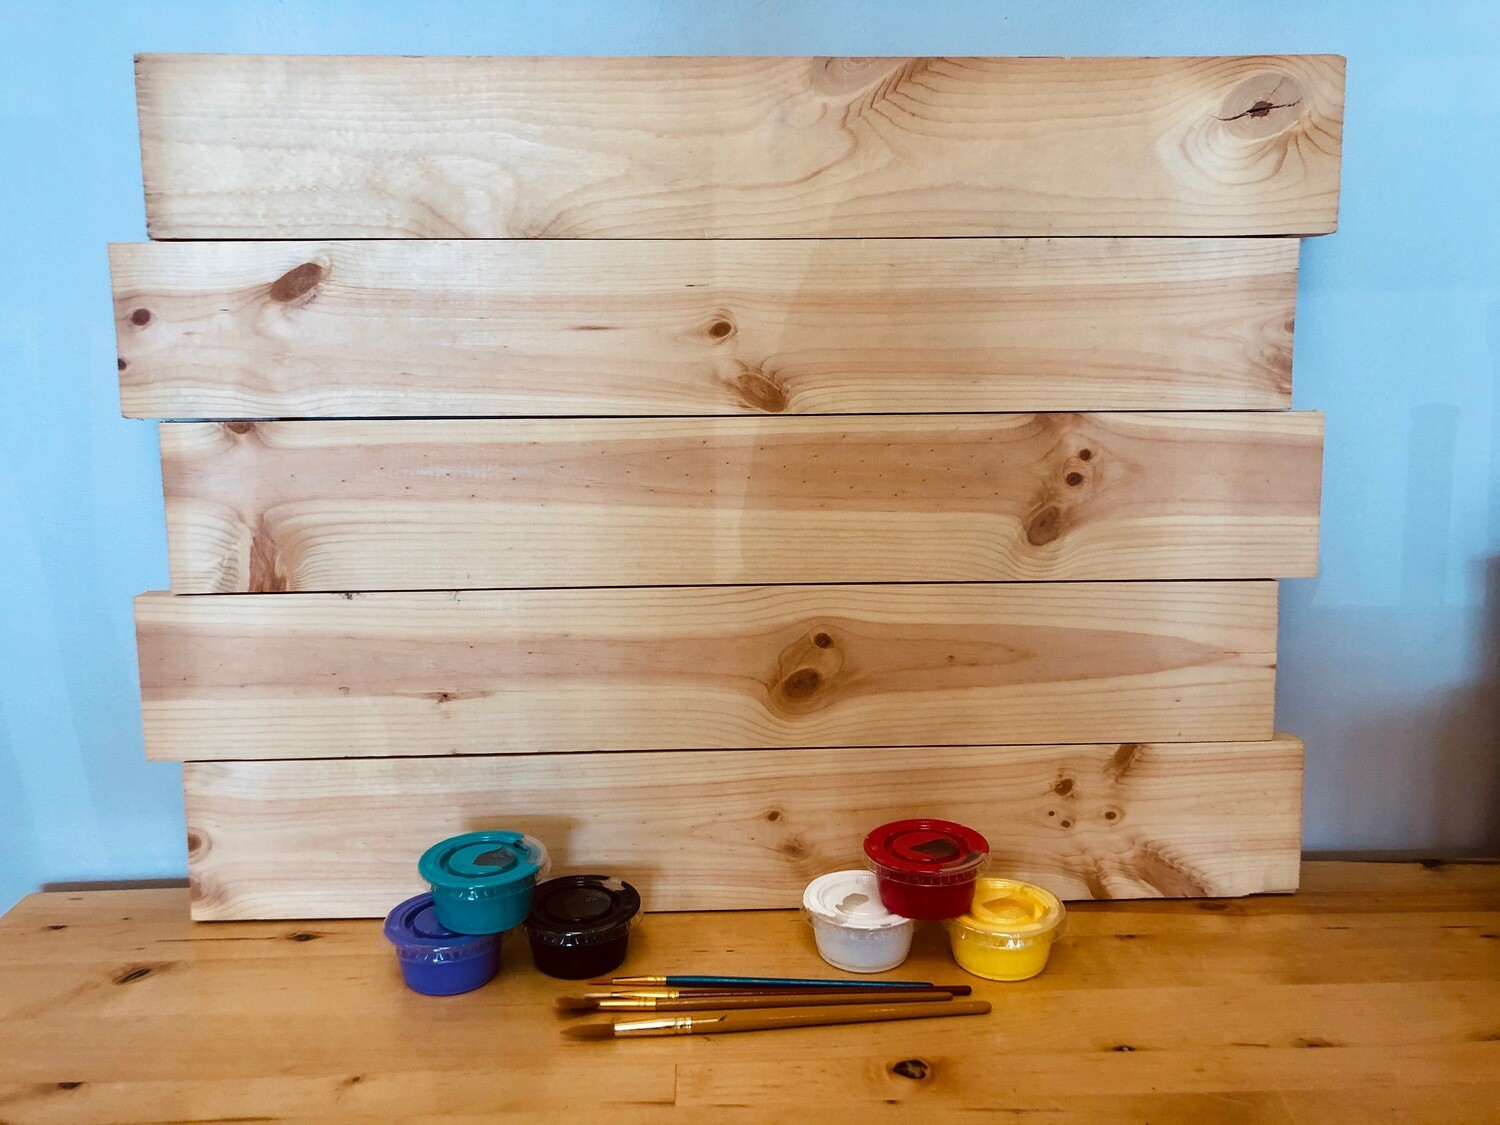 "Take Home 18"" x 24"" Wooden Pallet Board  - Pick up Curbside"